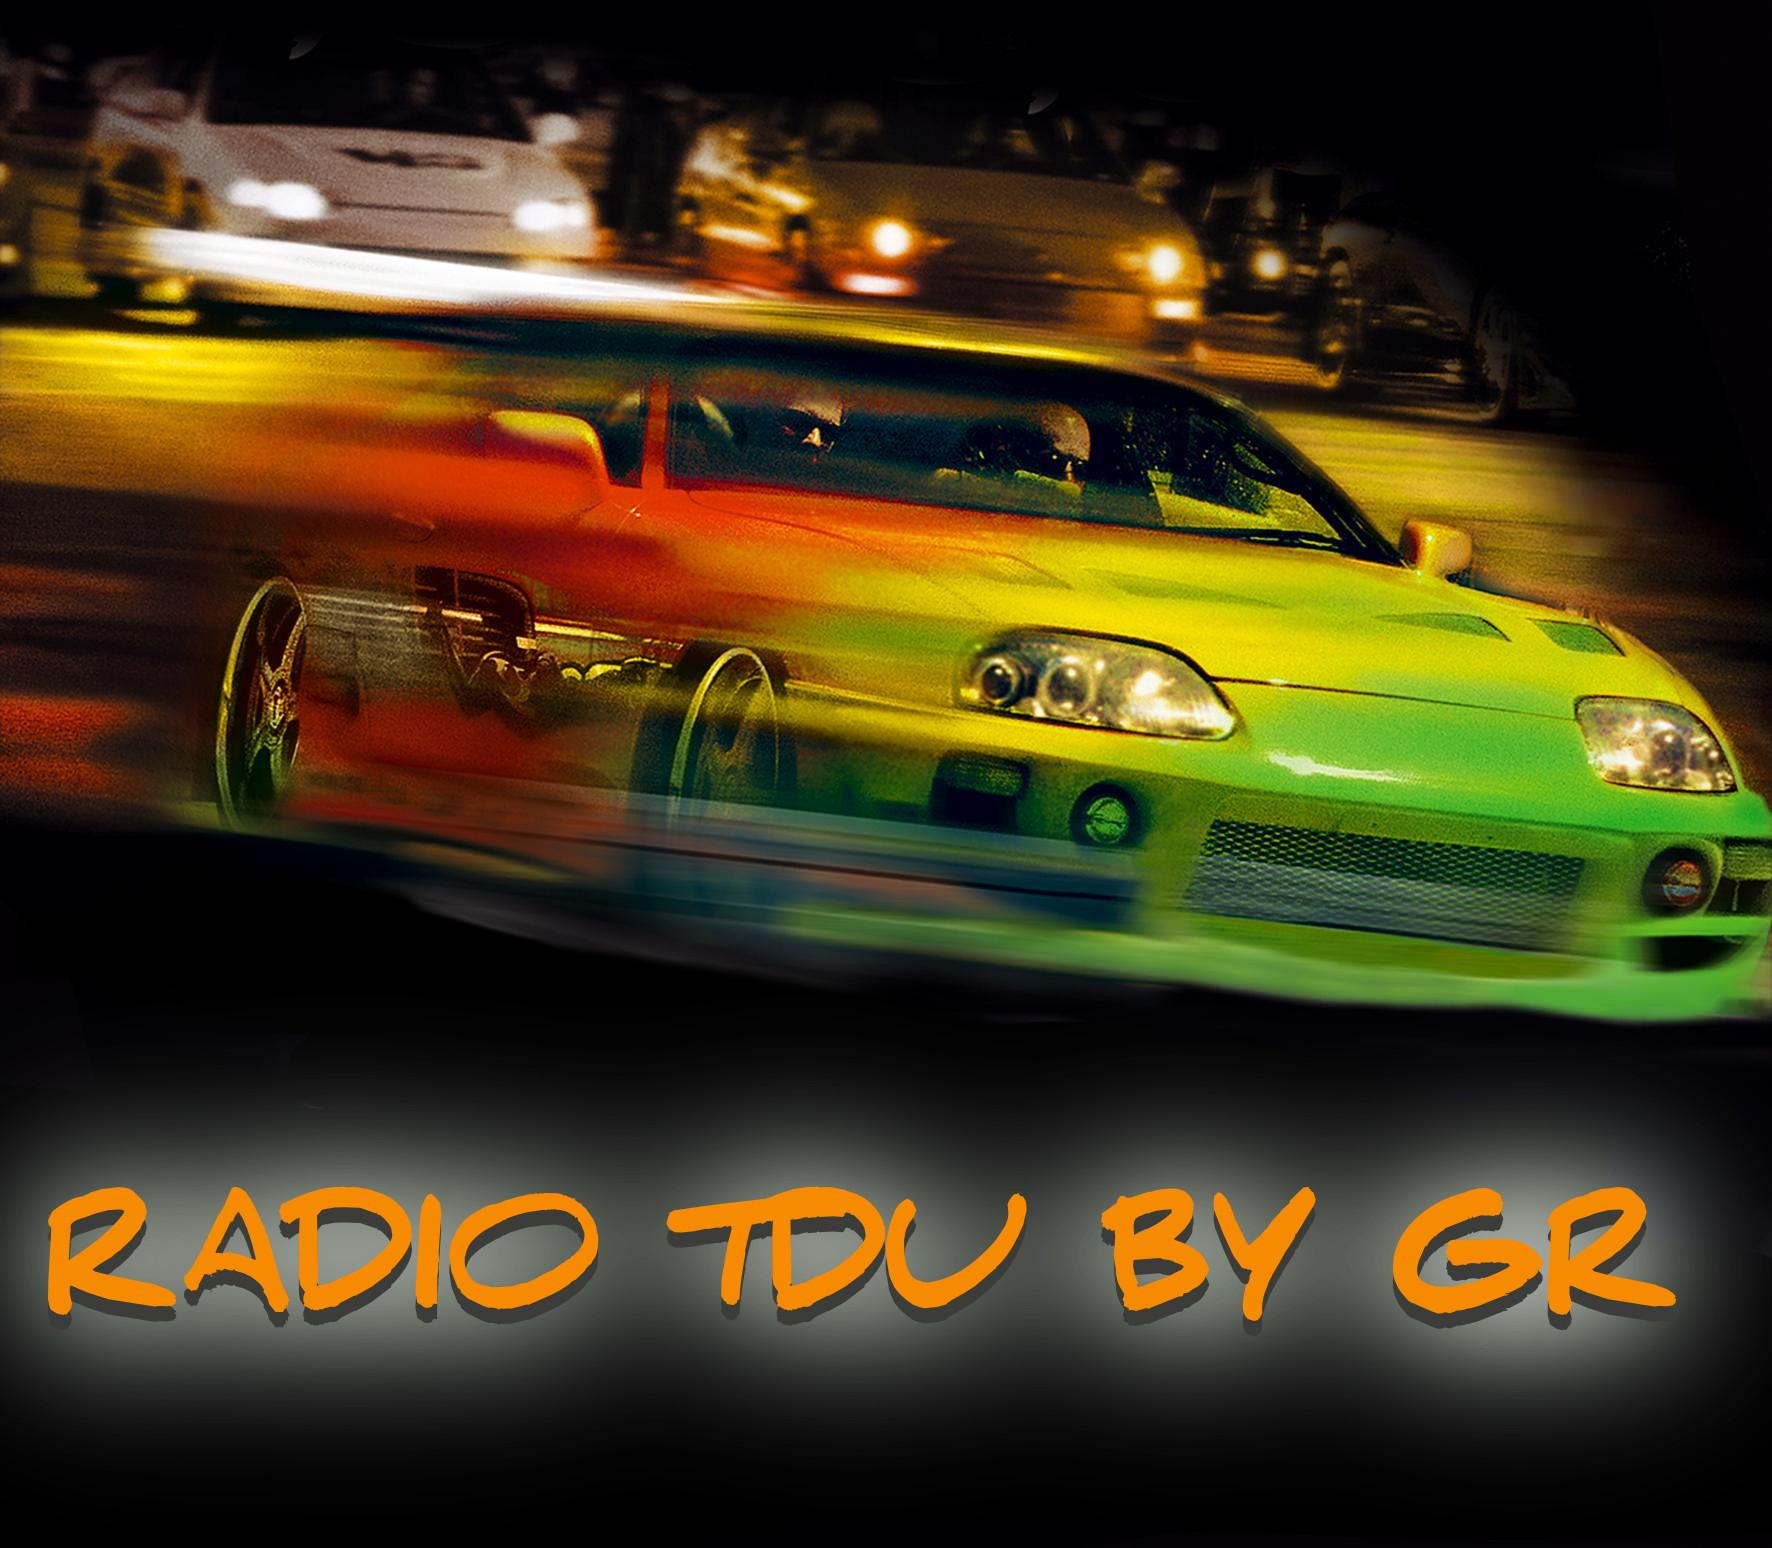 Radio Stations TDU by GR